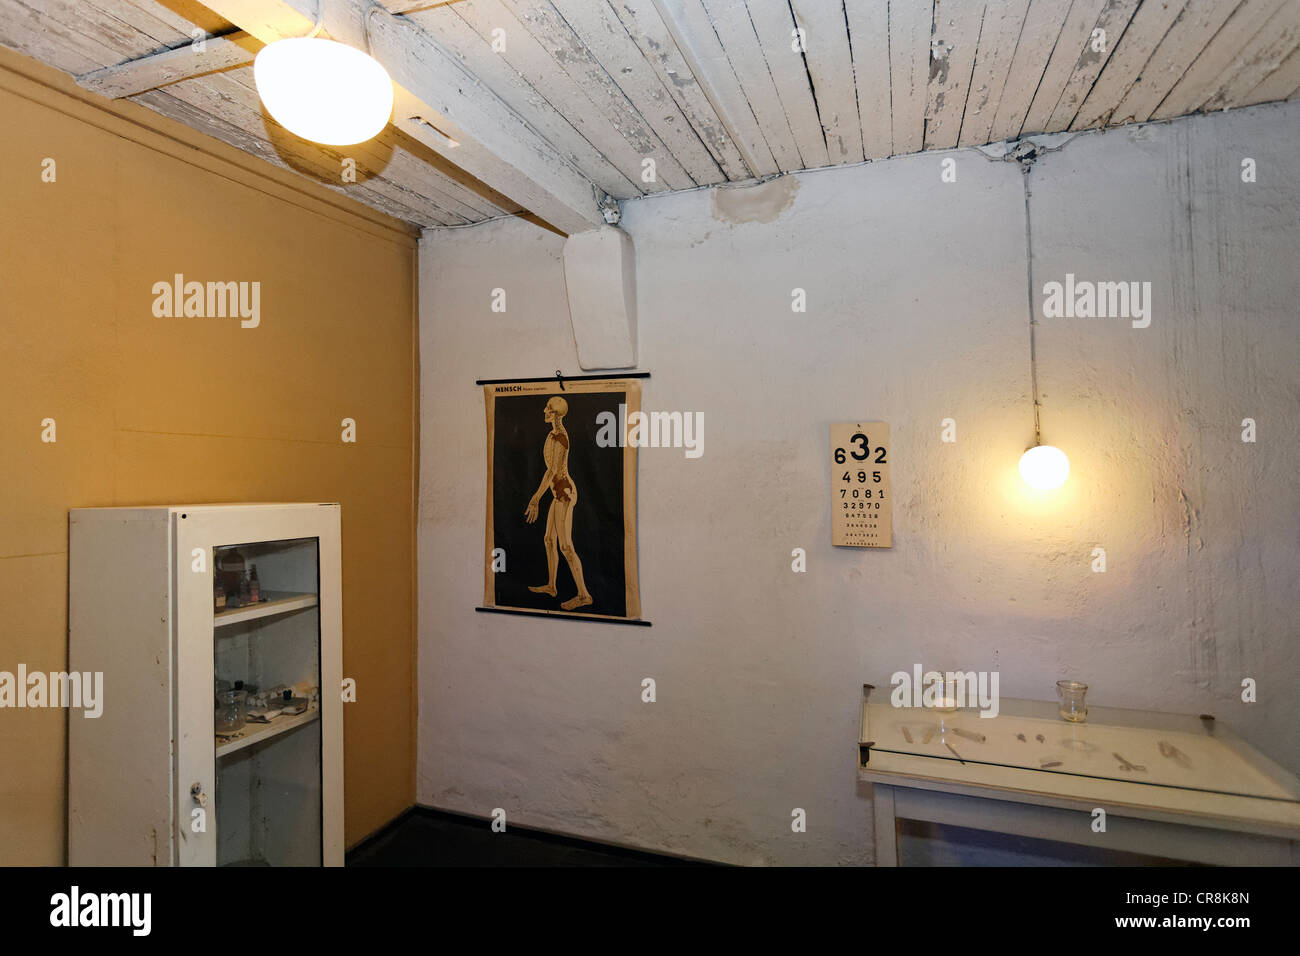 Department of Pathology, Buchenwald memorial, former concentration camp near Weimar, Thuringia, Germany, Europe - Stock Image